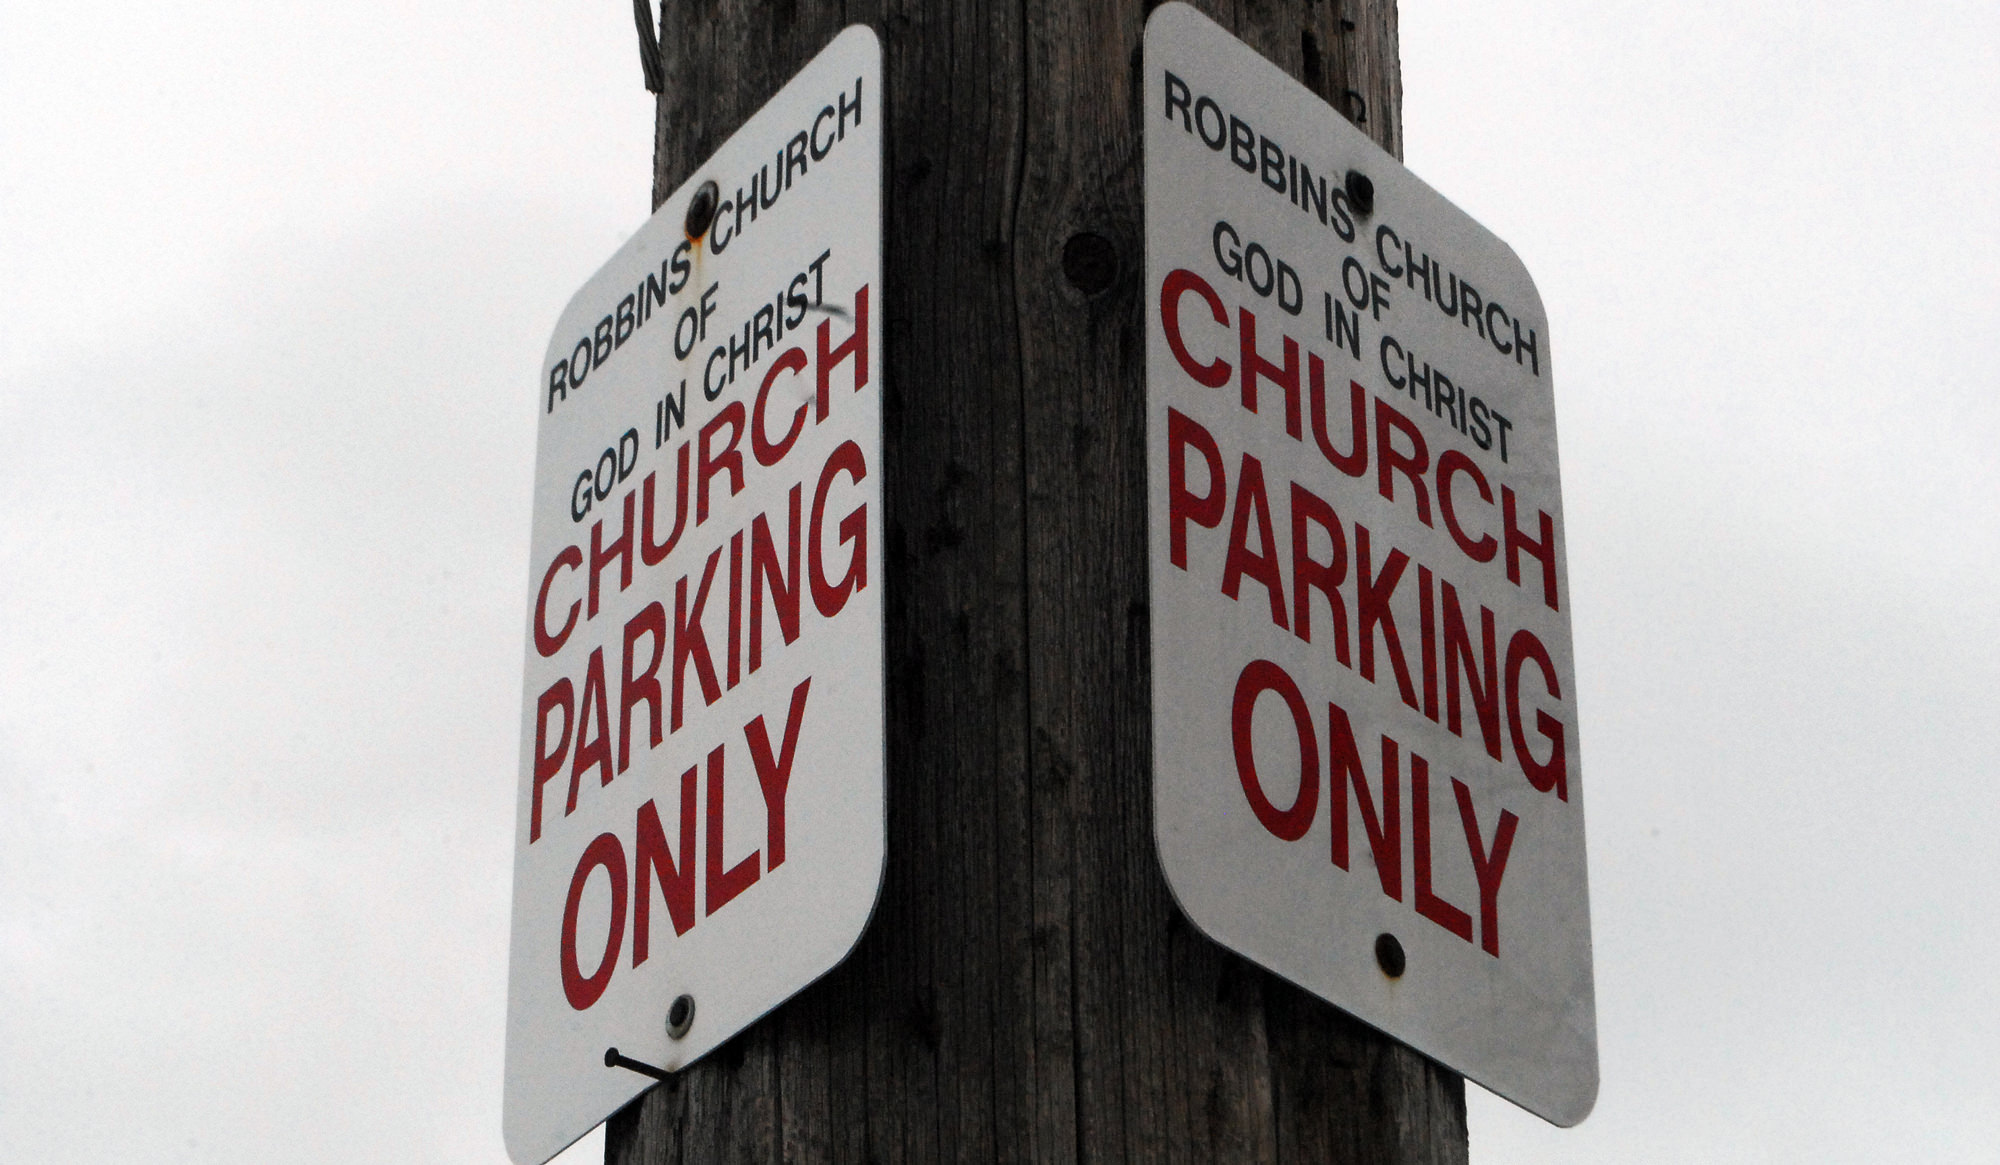 Robbins_Church_Parking_2000_x_1165